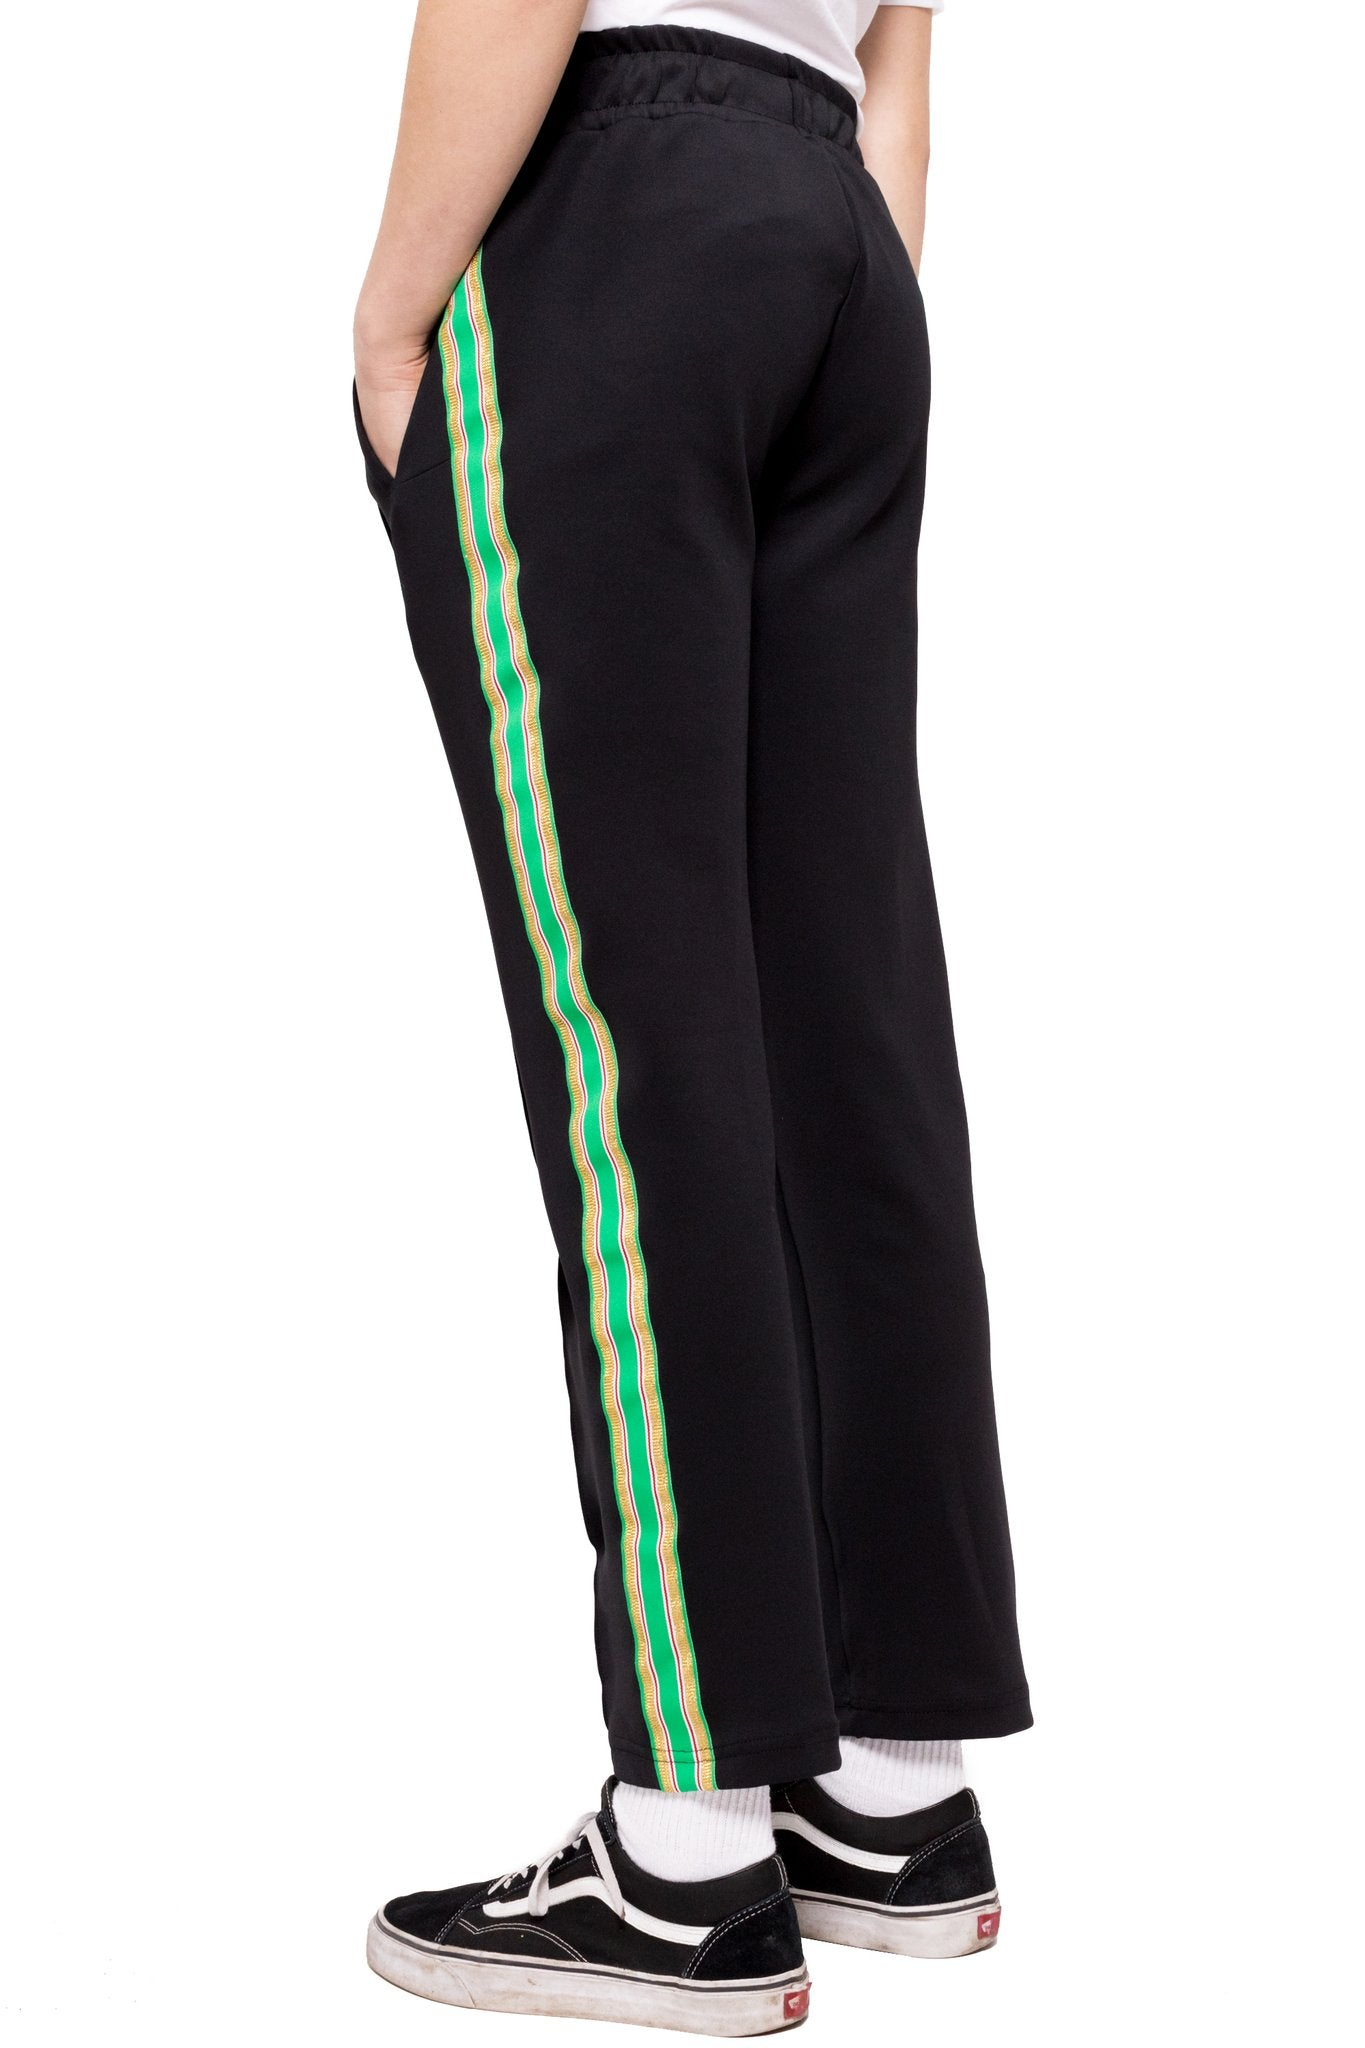 BRAVO TRACK PANTS - BLACK/GREEN